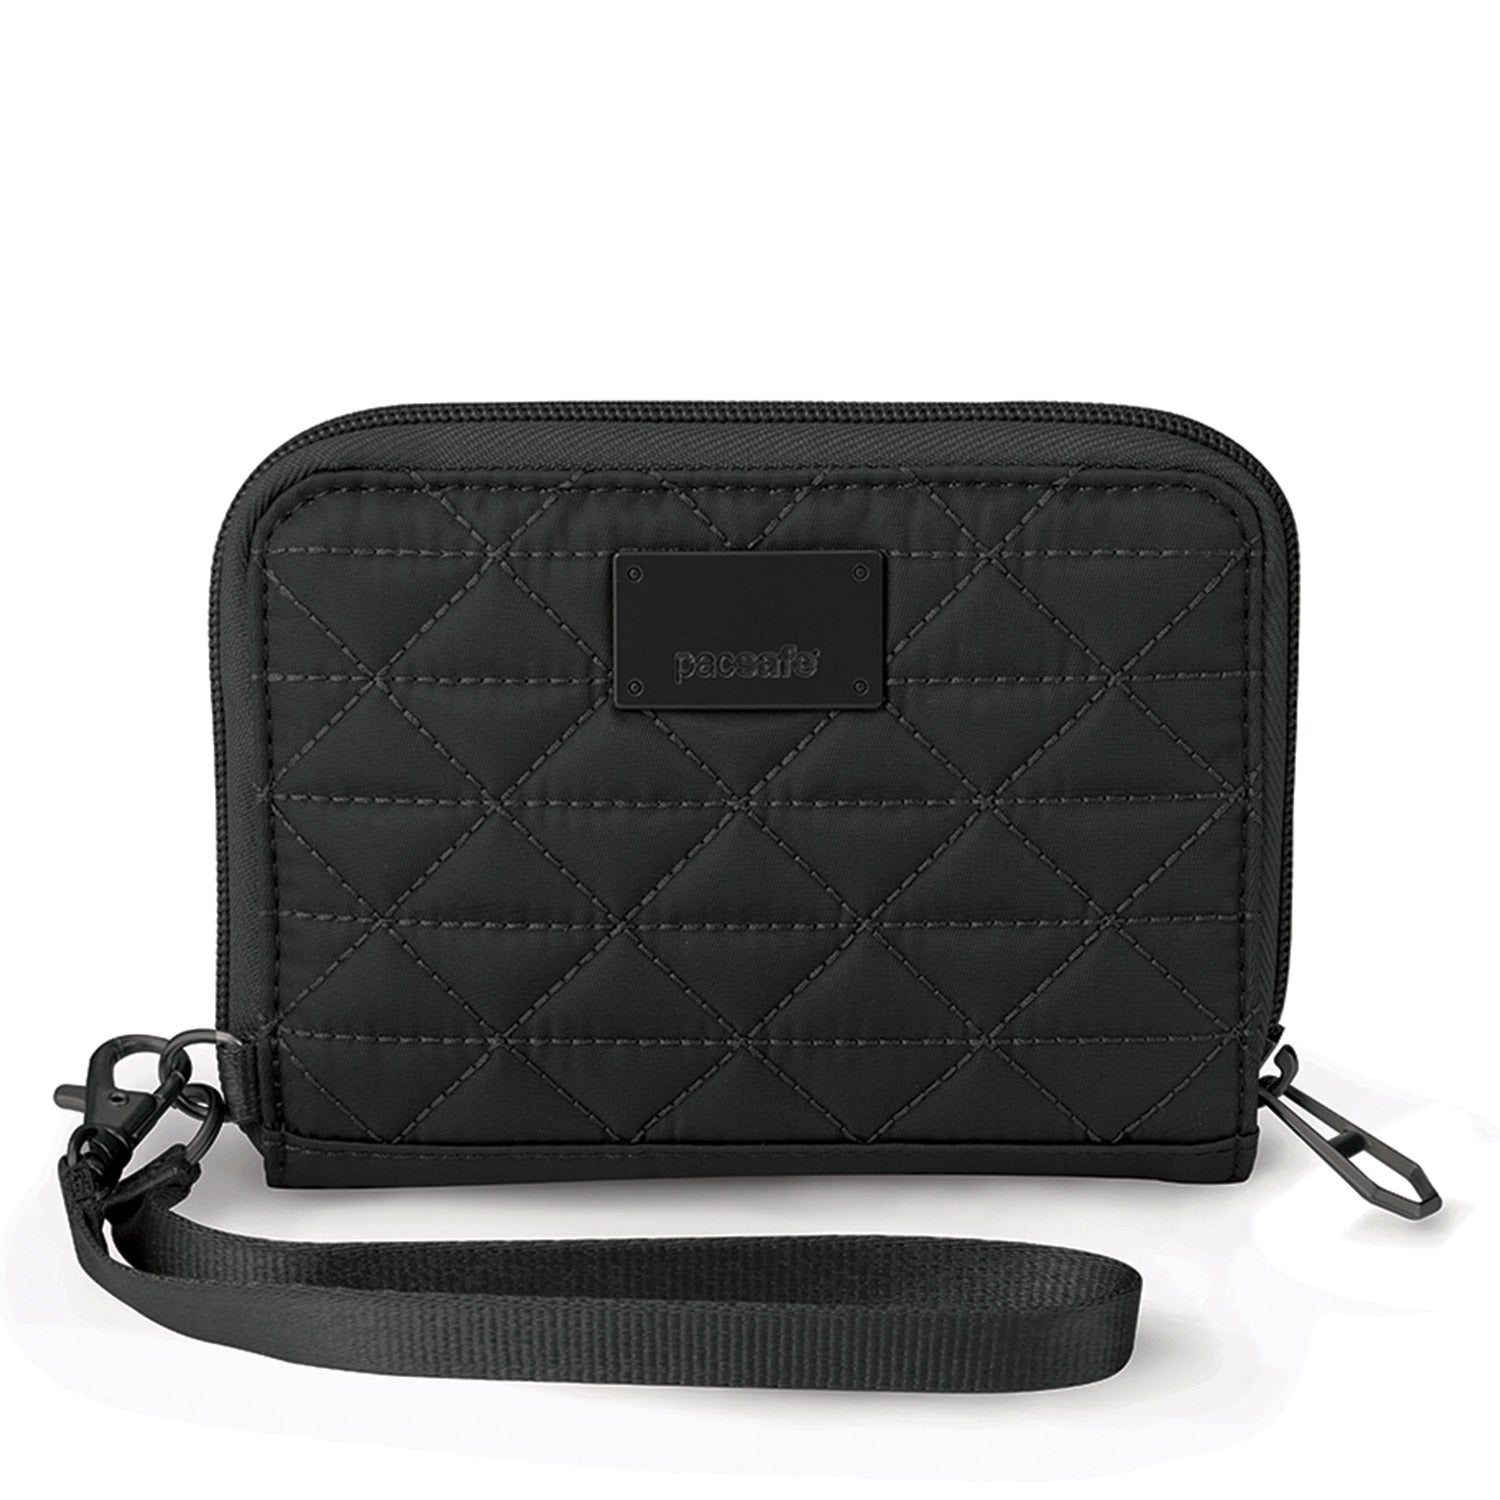 Pacsafe® RFIDsafe™ W100 RFID Blocking Wallet